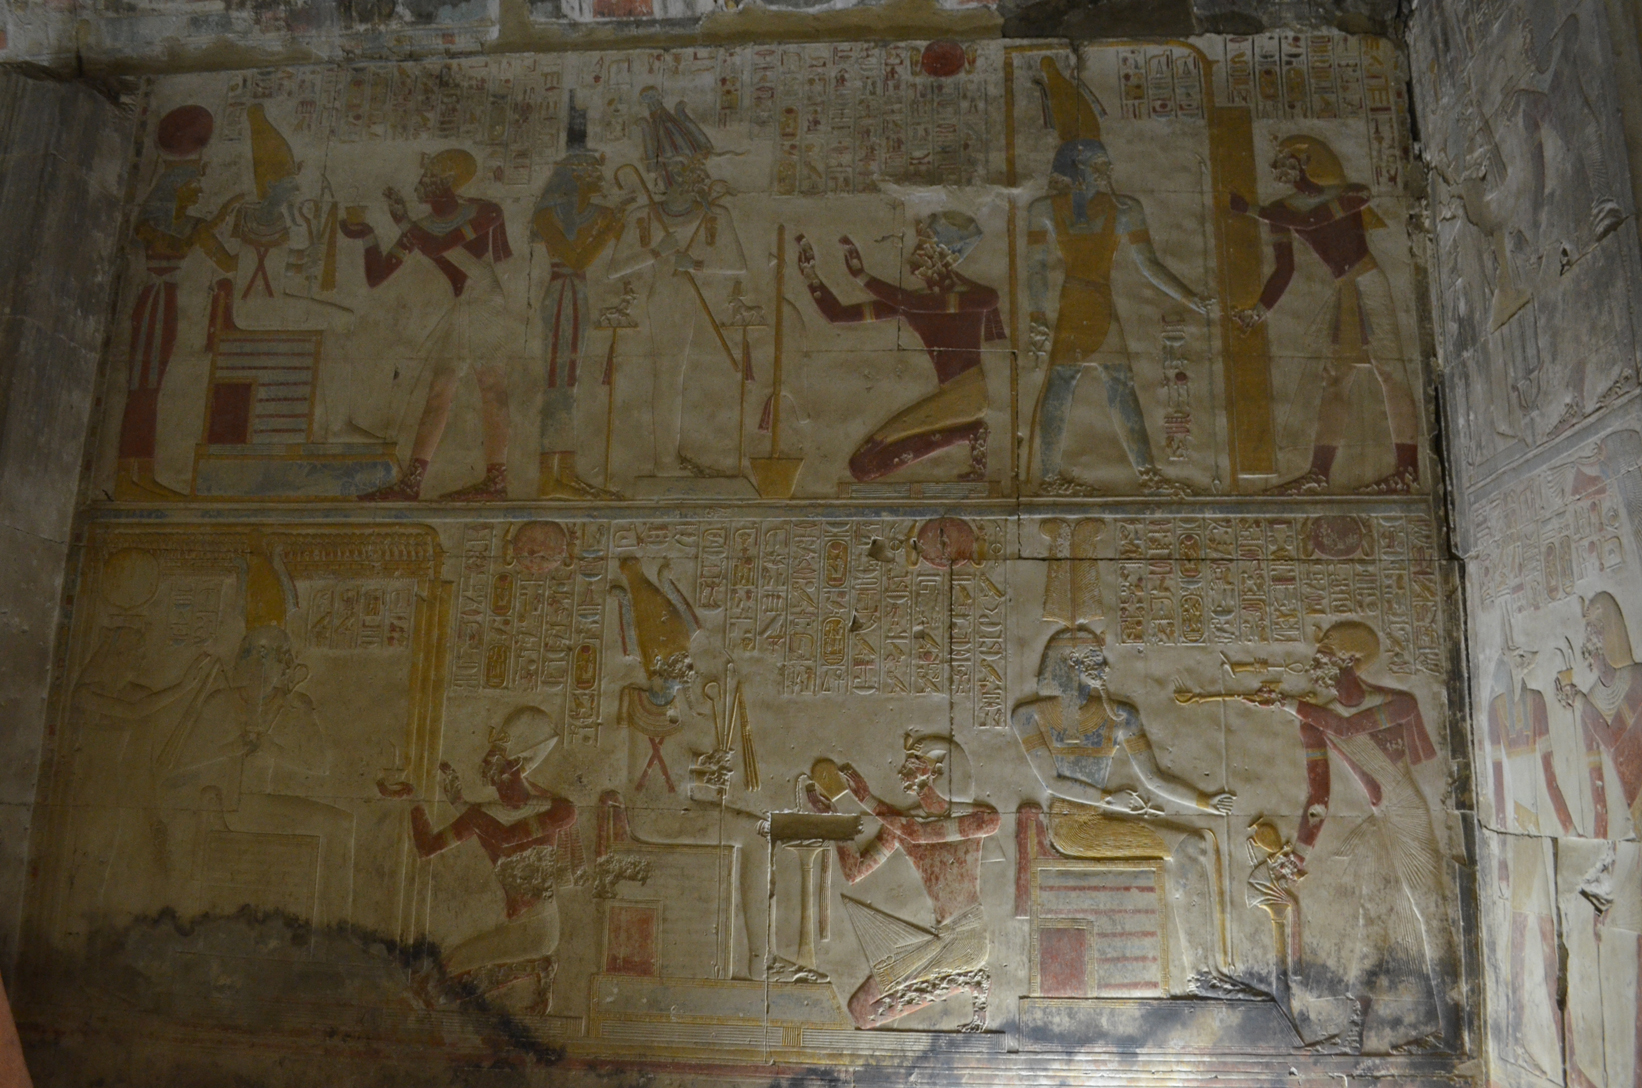 Abydos temple offerings relief